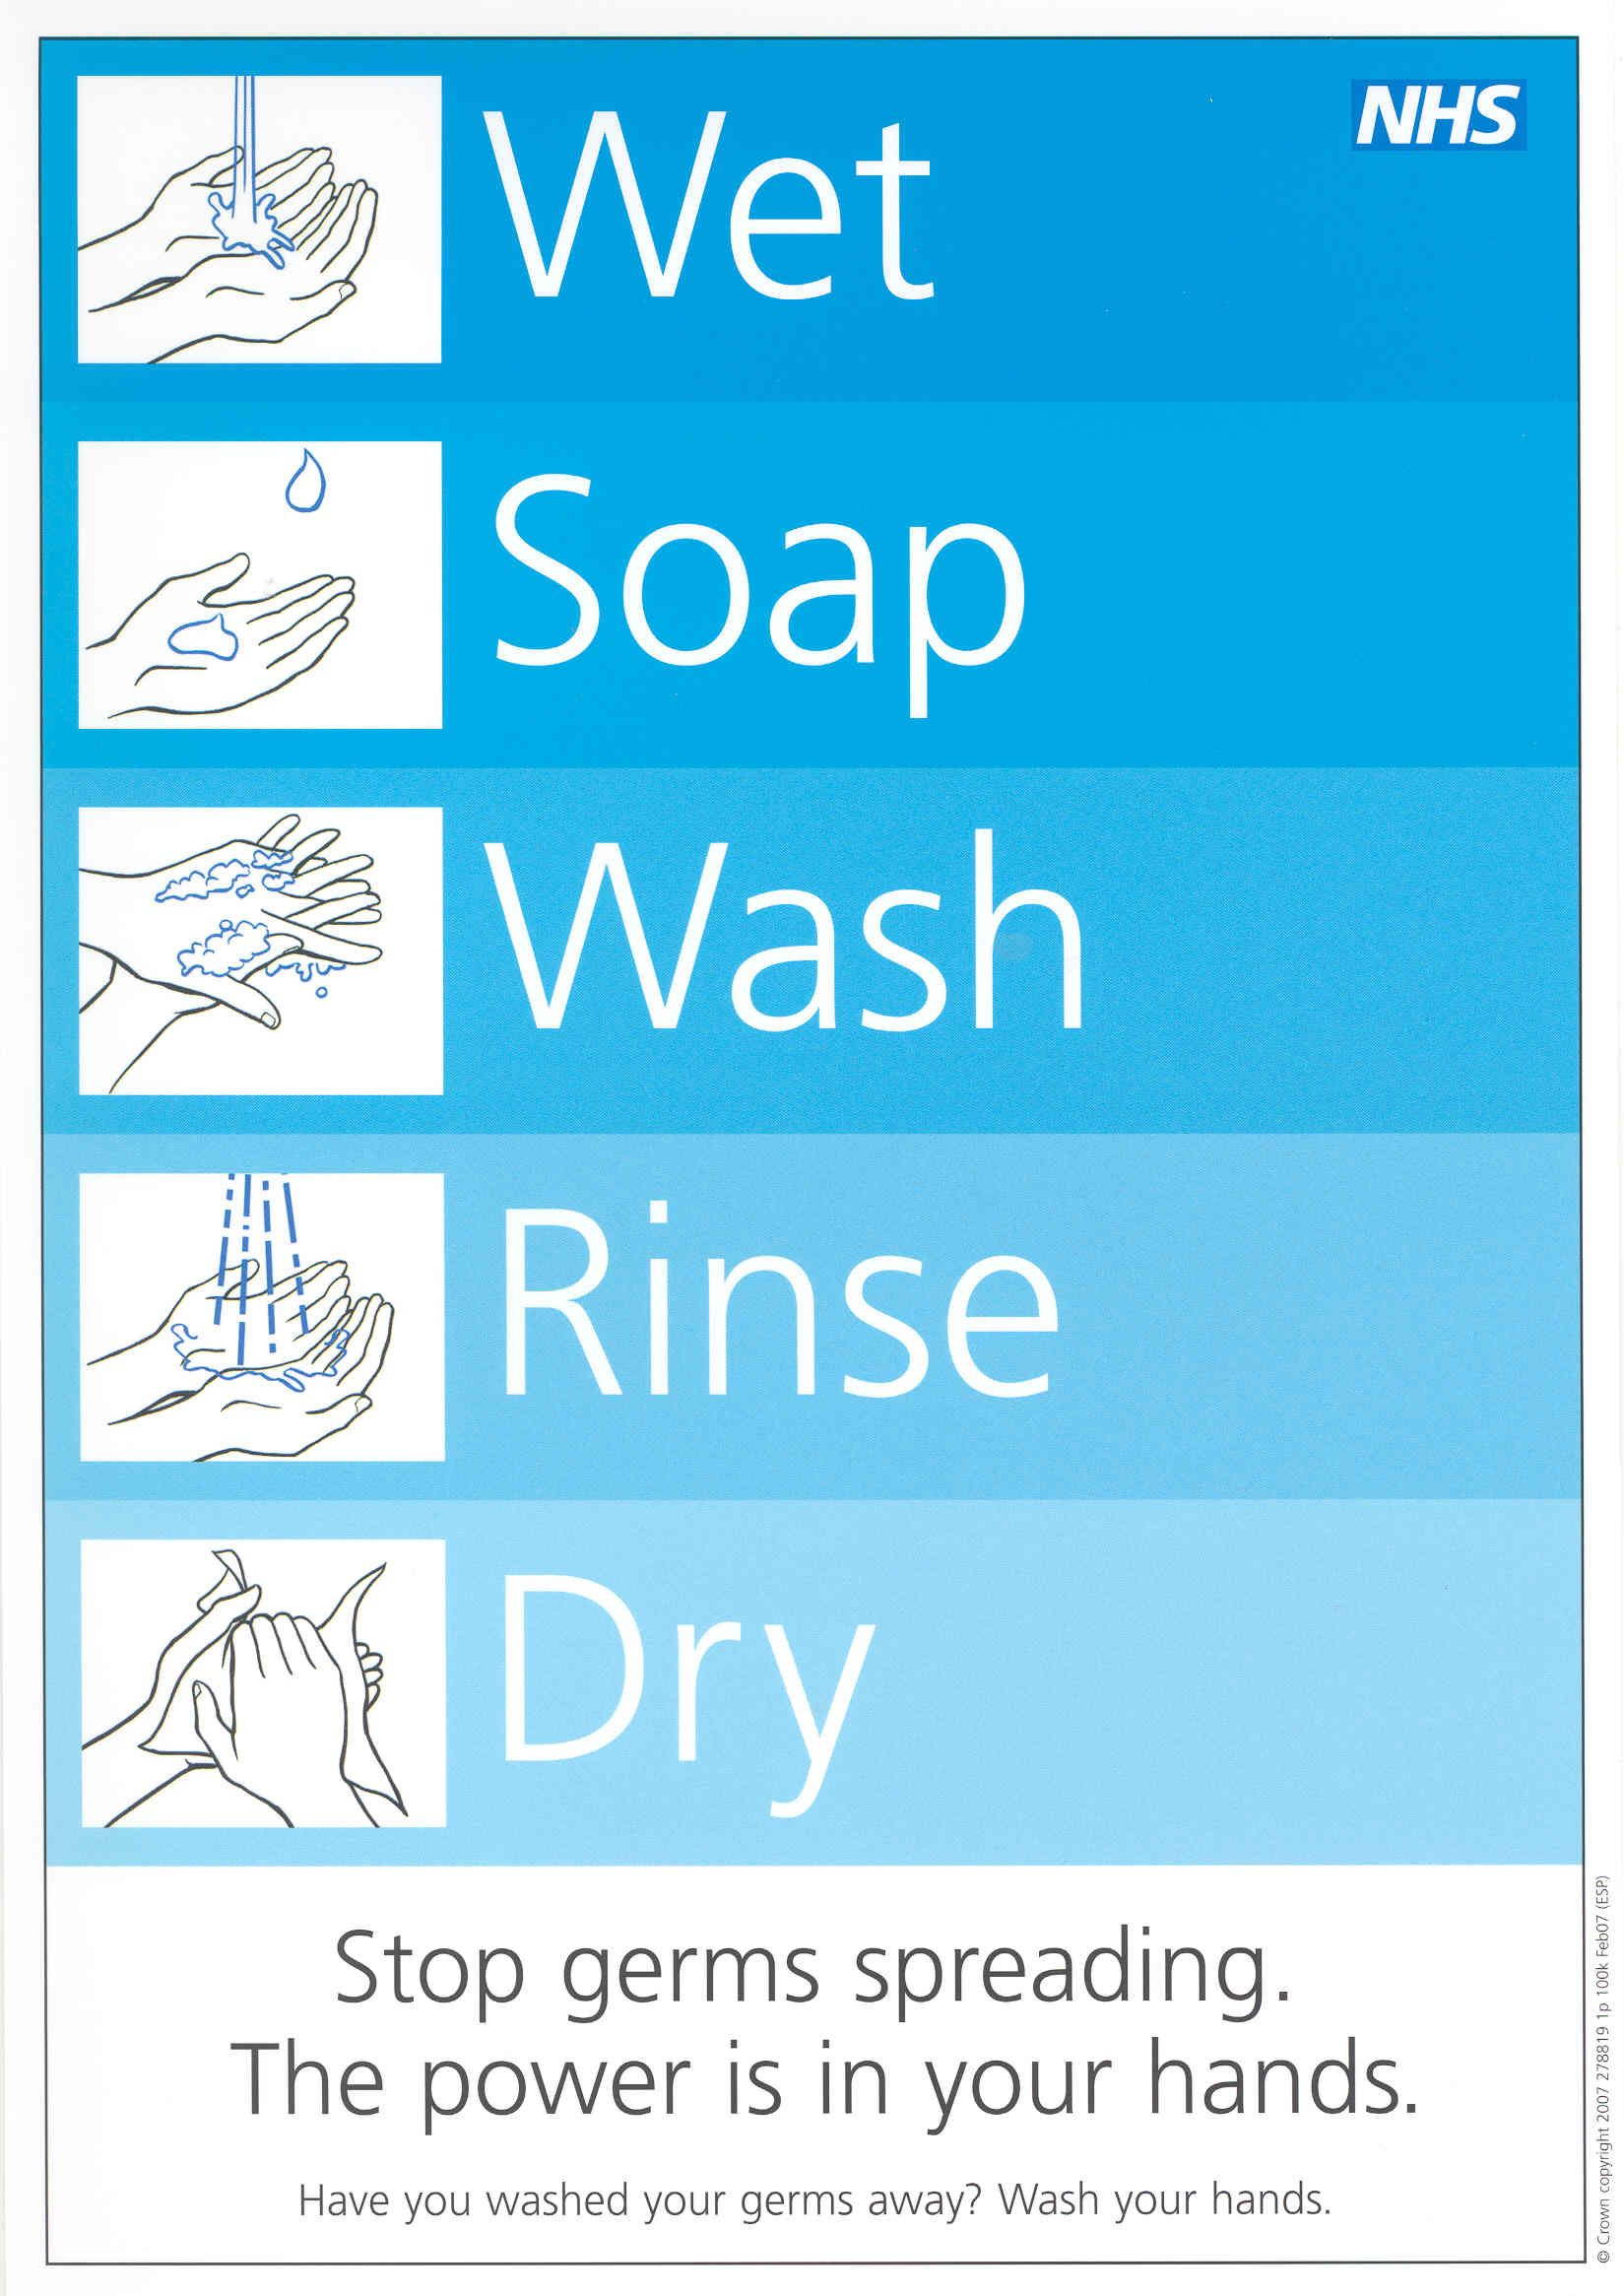 photograph regarding Free Printable Hand Washing Posters called Clean palms poster 1st Quality Hand washing poster, Germ